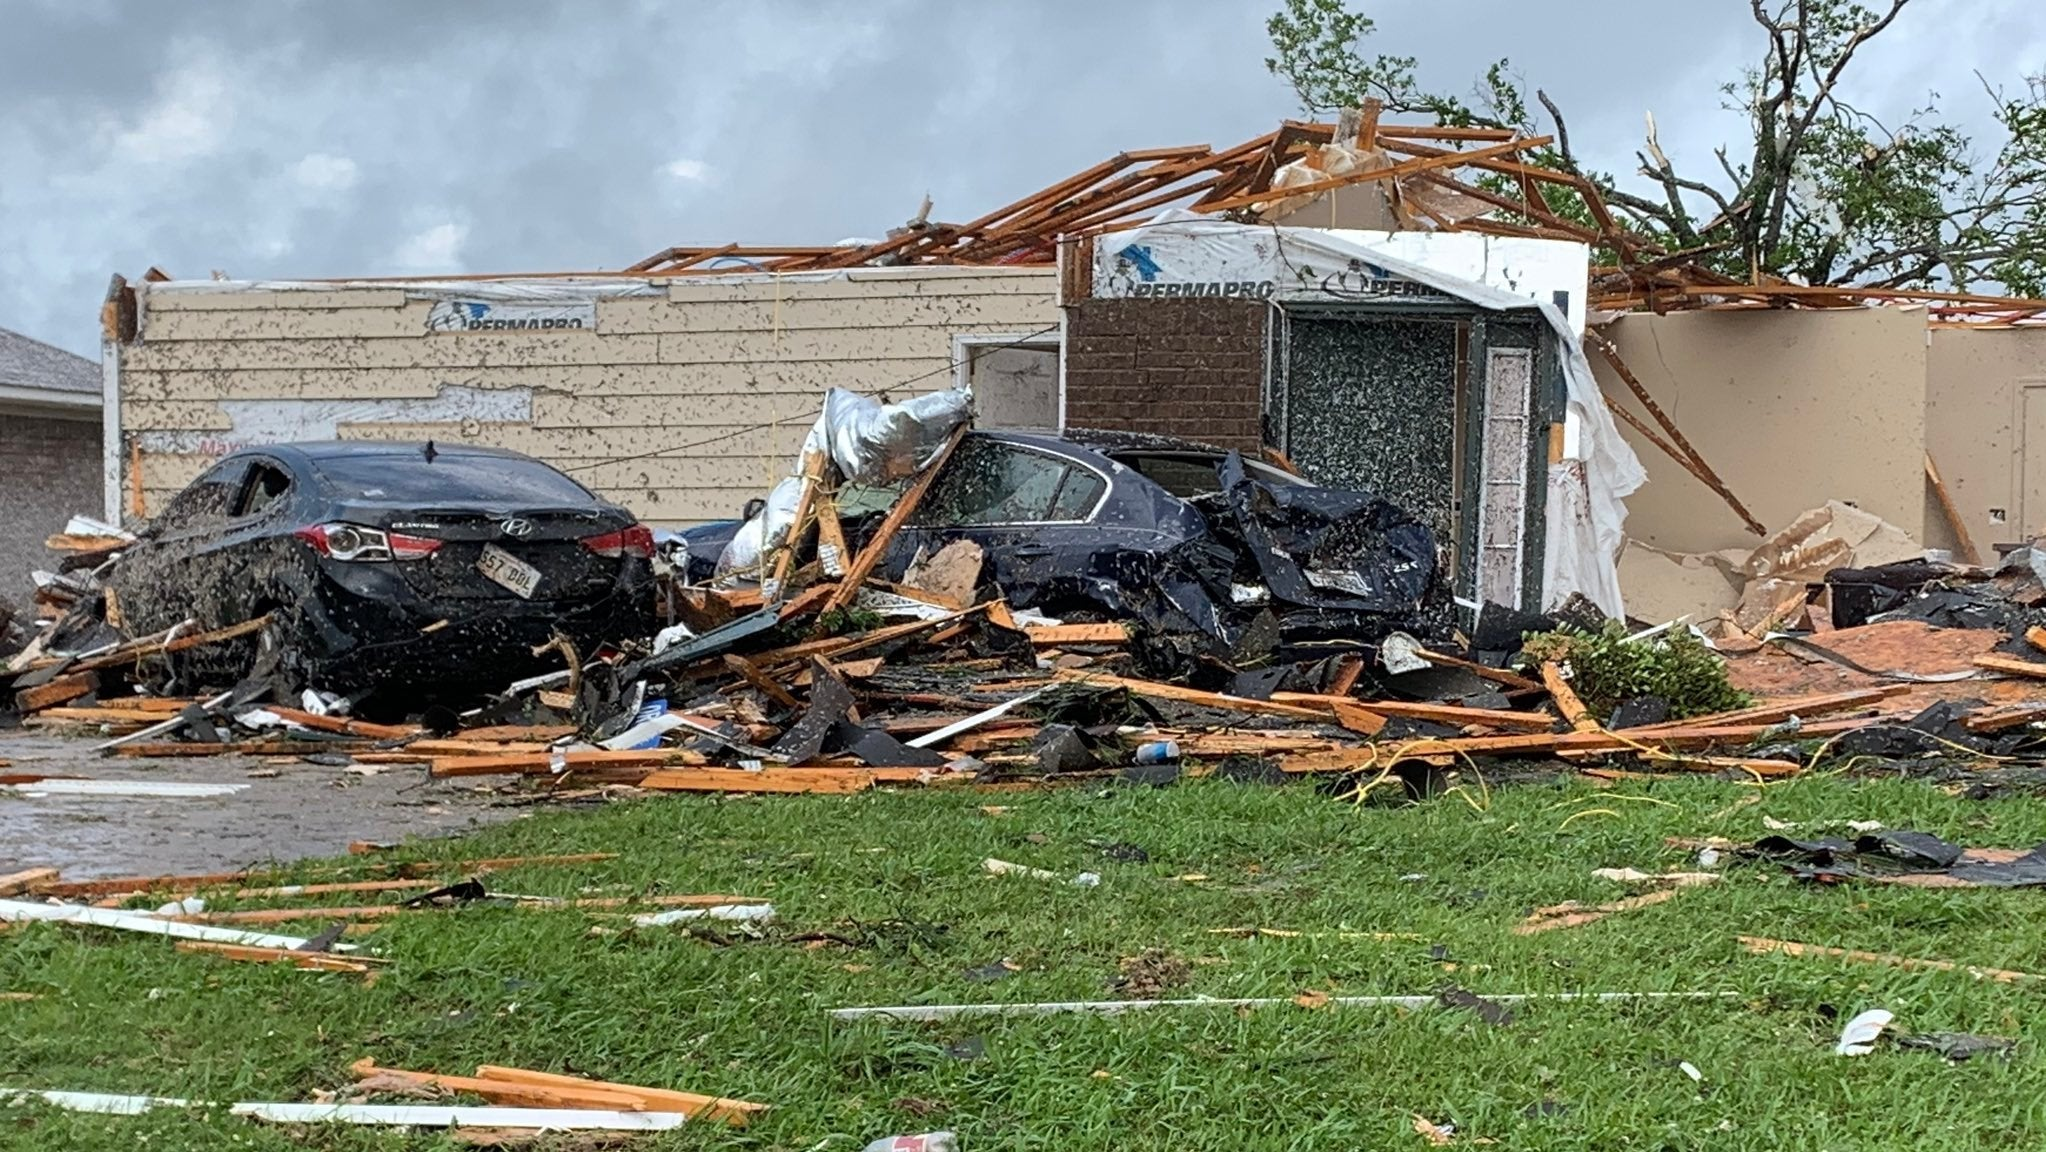 A Tornado Outbreak Ripped Across The U.S. South On Easter, And It's Not Over Yet